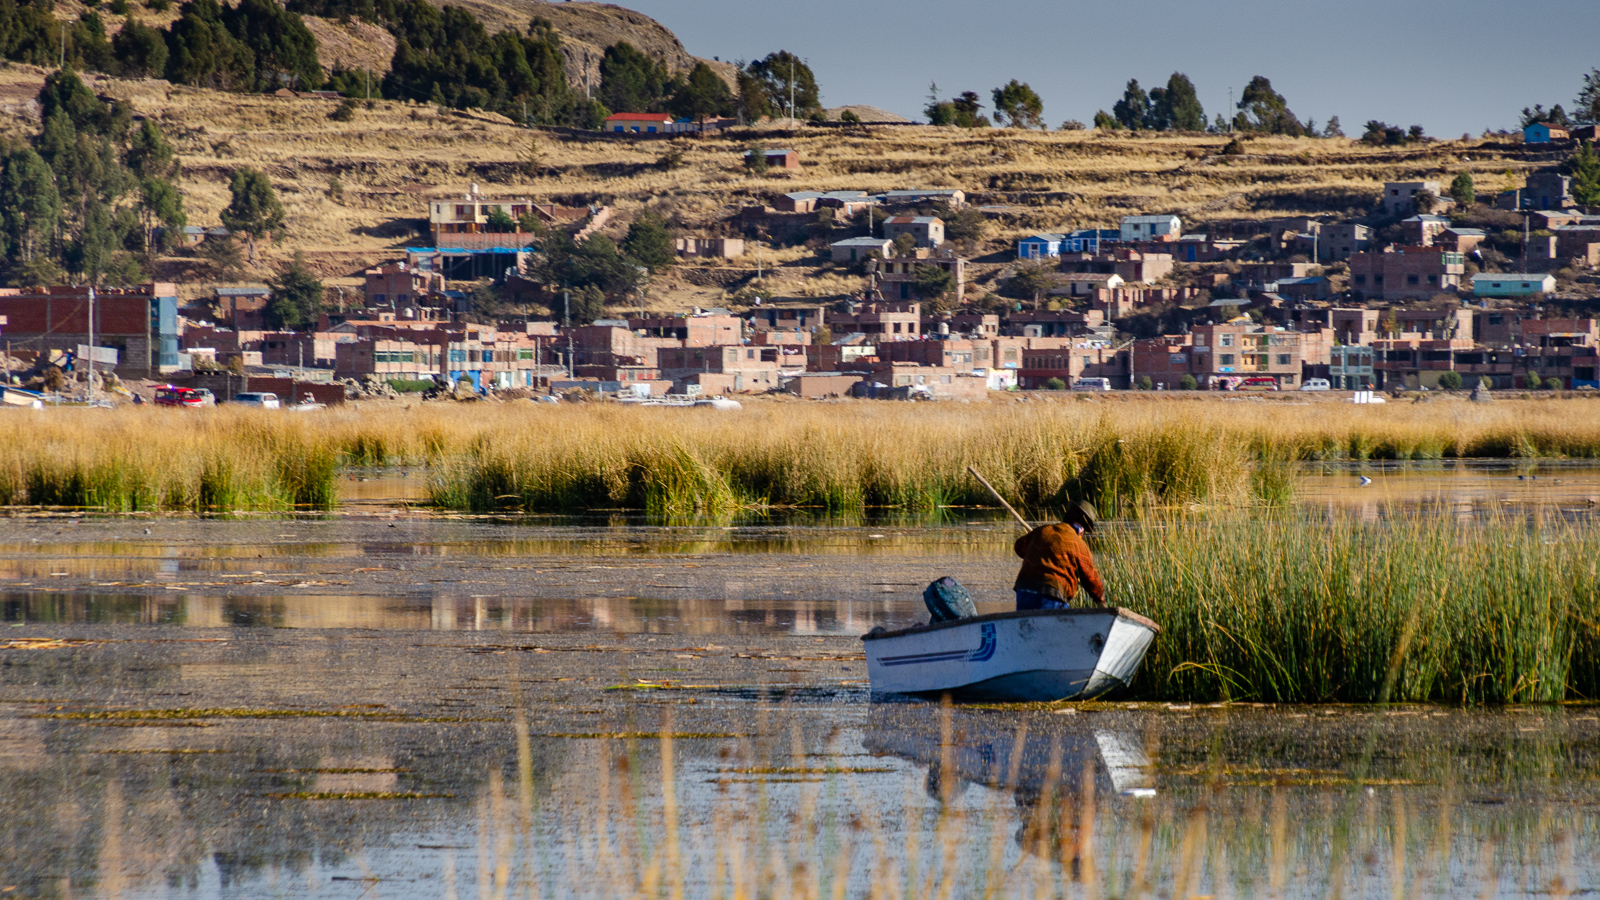 Notes on renting a boat in Puno